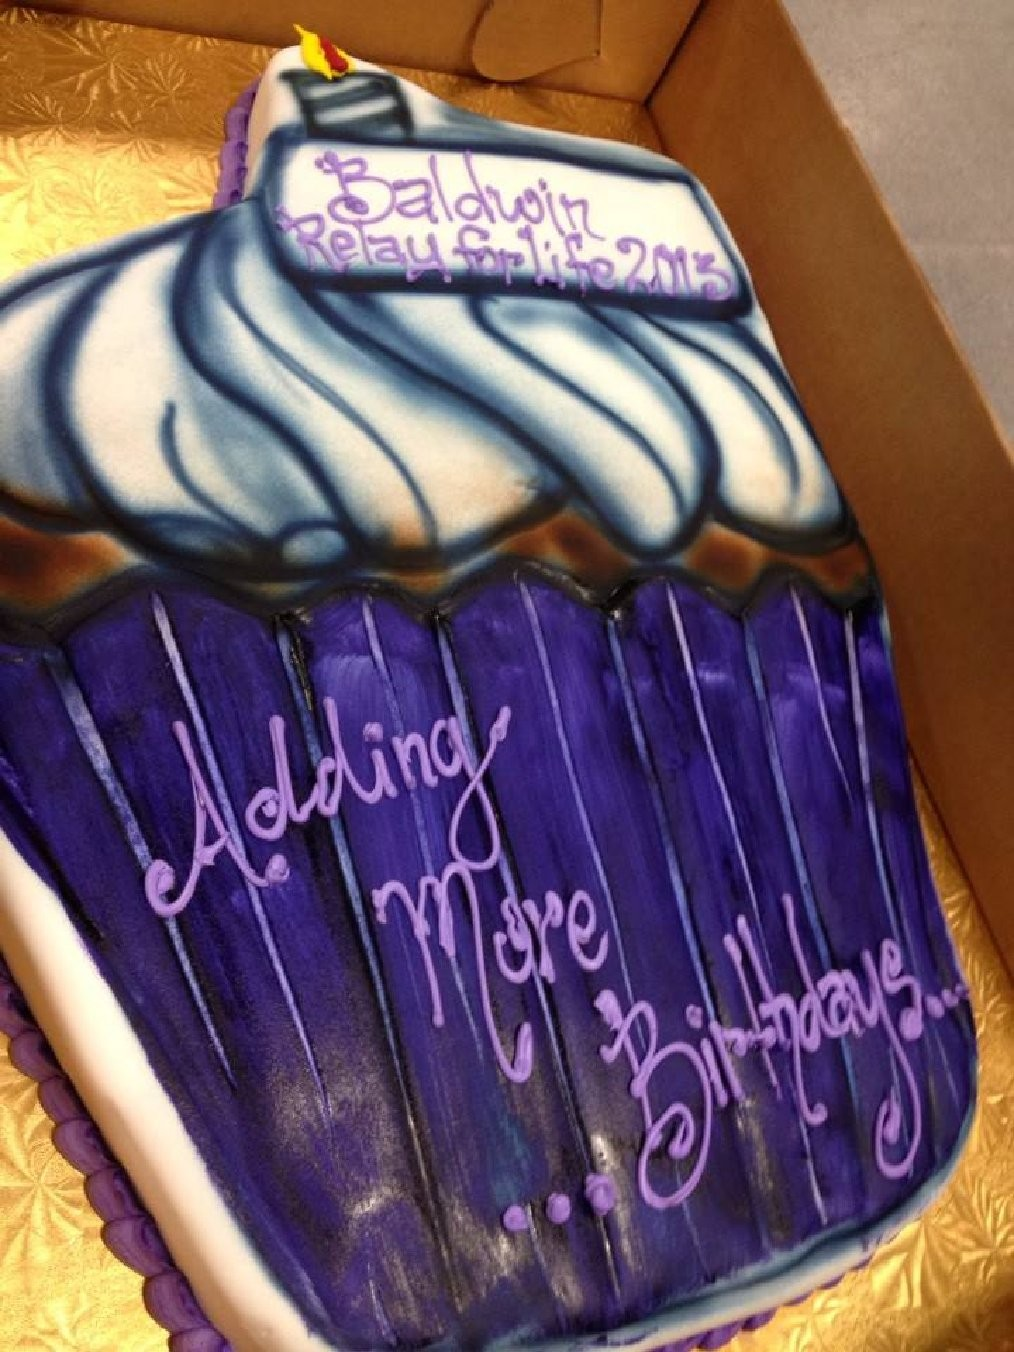 The Sweet Karma bakery 